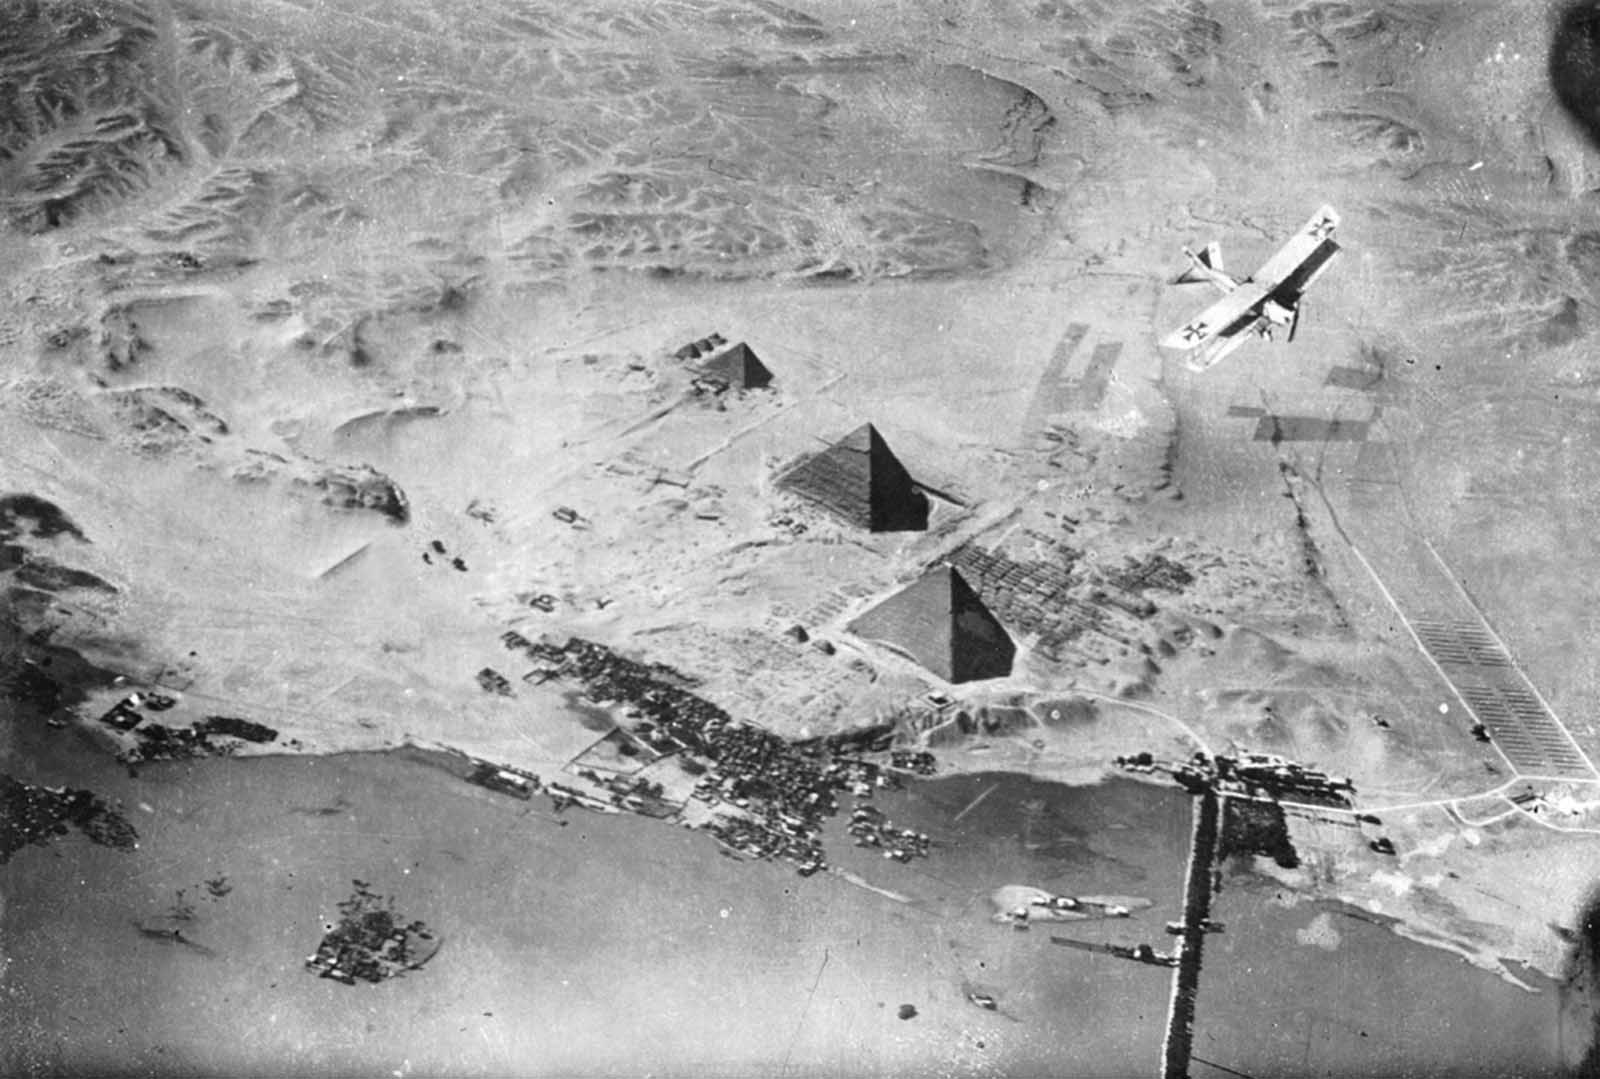 A German airplane over the Pyramids of Giza in Egypt.